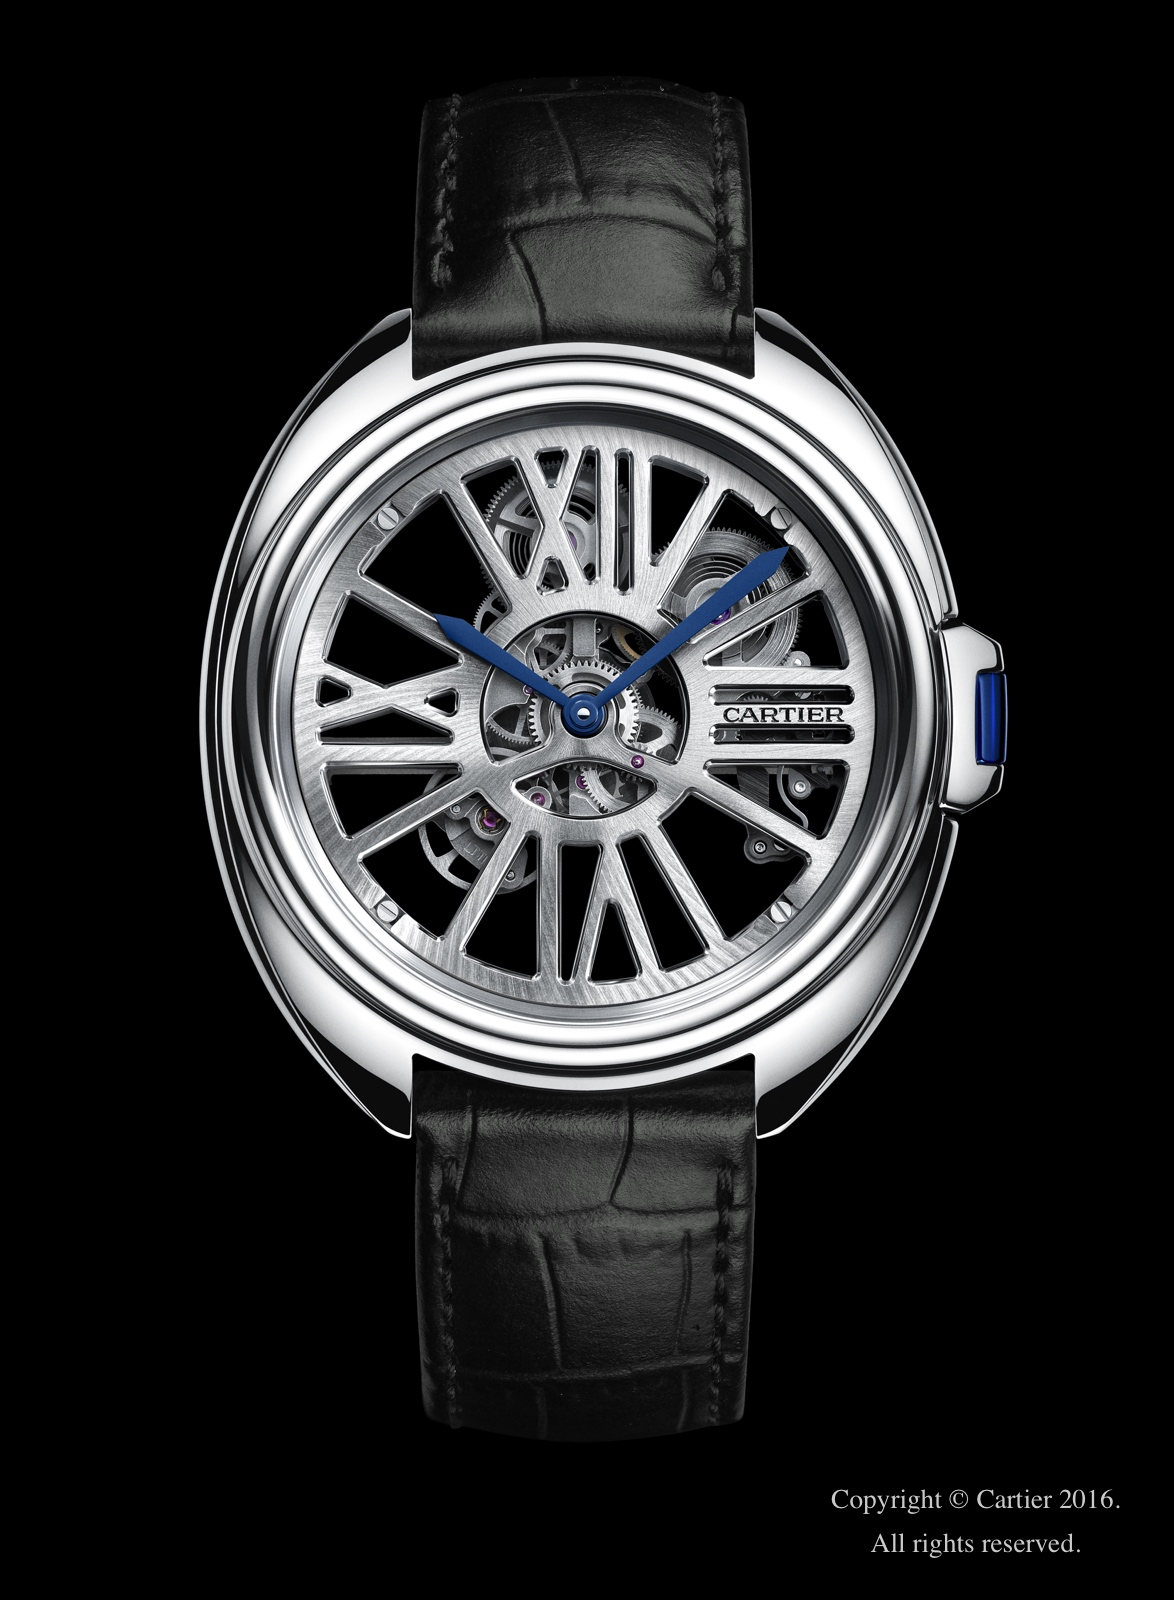 Cartier en el SIHH 2016 - Cle de Cartier Automatic Skeleton